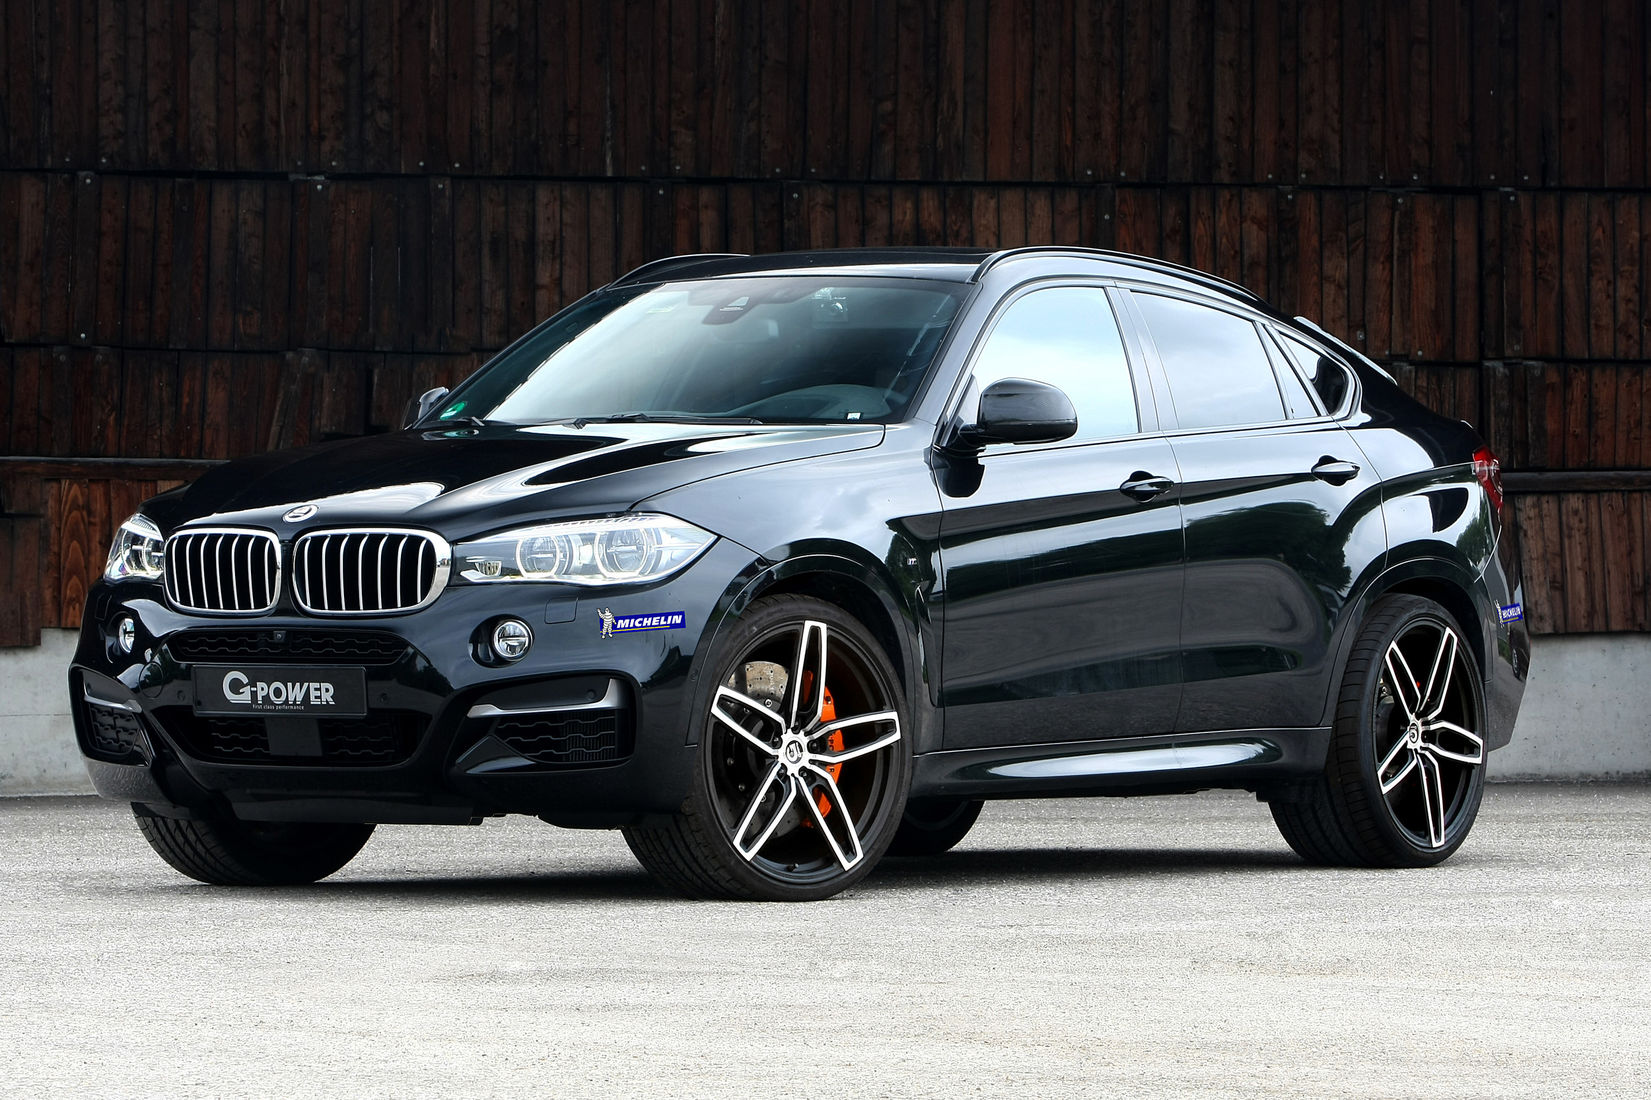 official g power bmw x6 m50d gtspirit. Black Bedroom Furniture Sets. Home Design Ideas